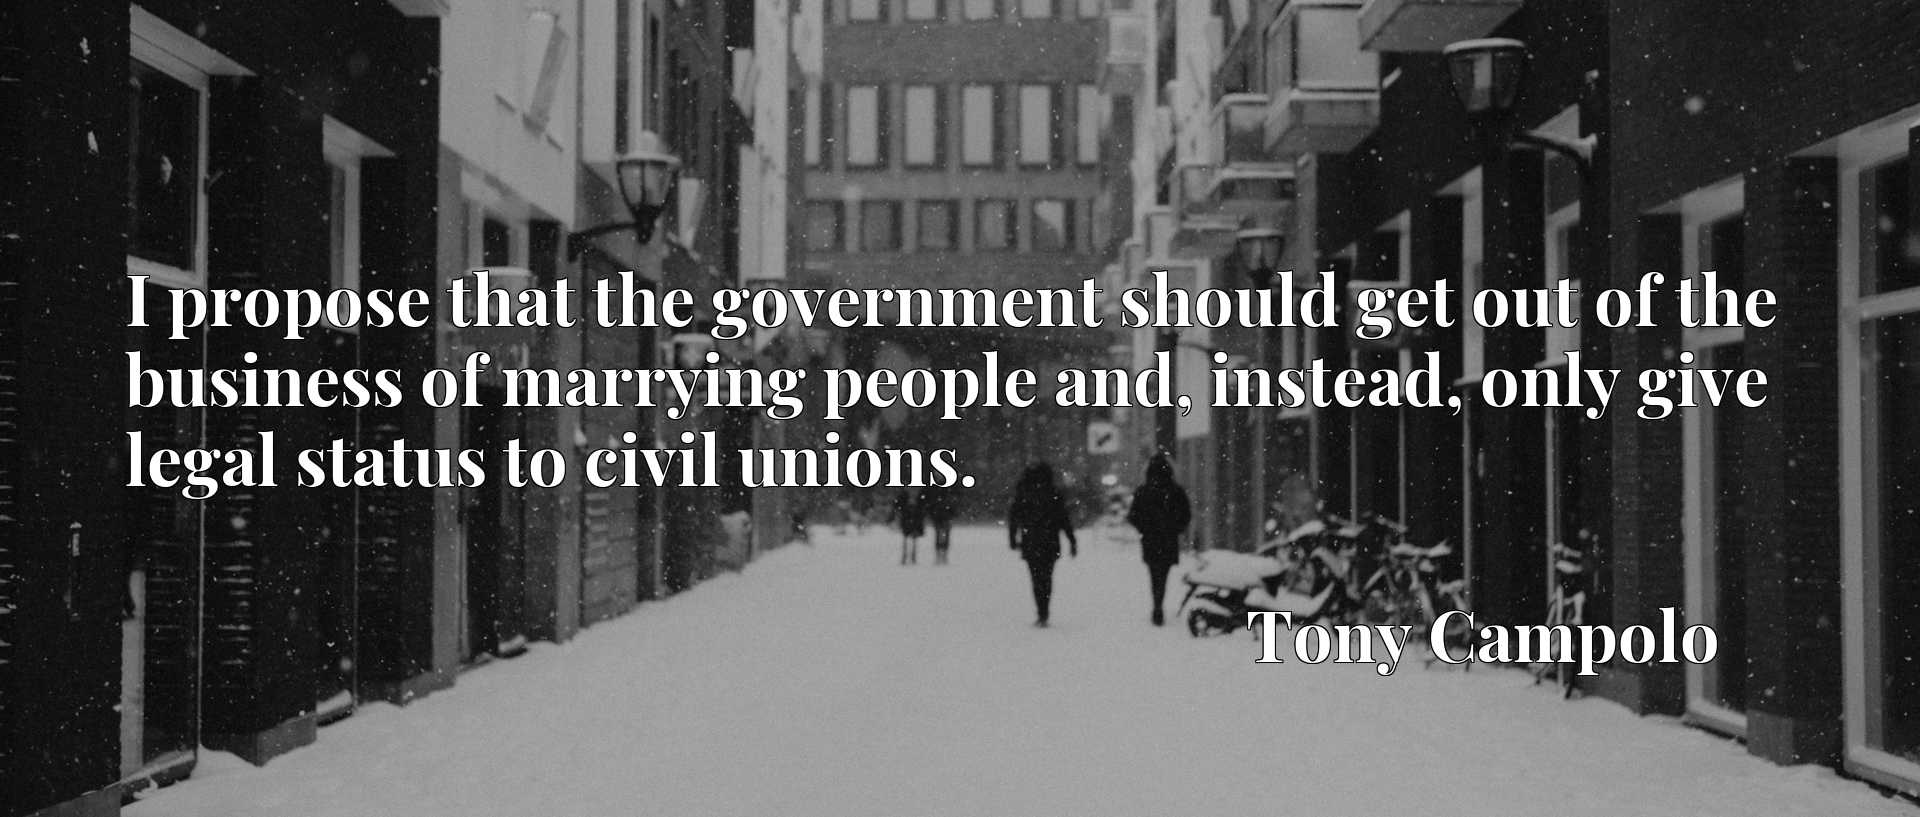 I propose that the government should get out of the business of marrying people and, instead, only give legal status to civil unions.